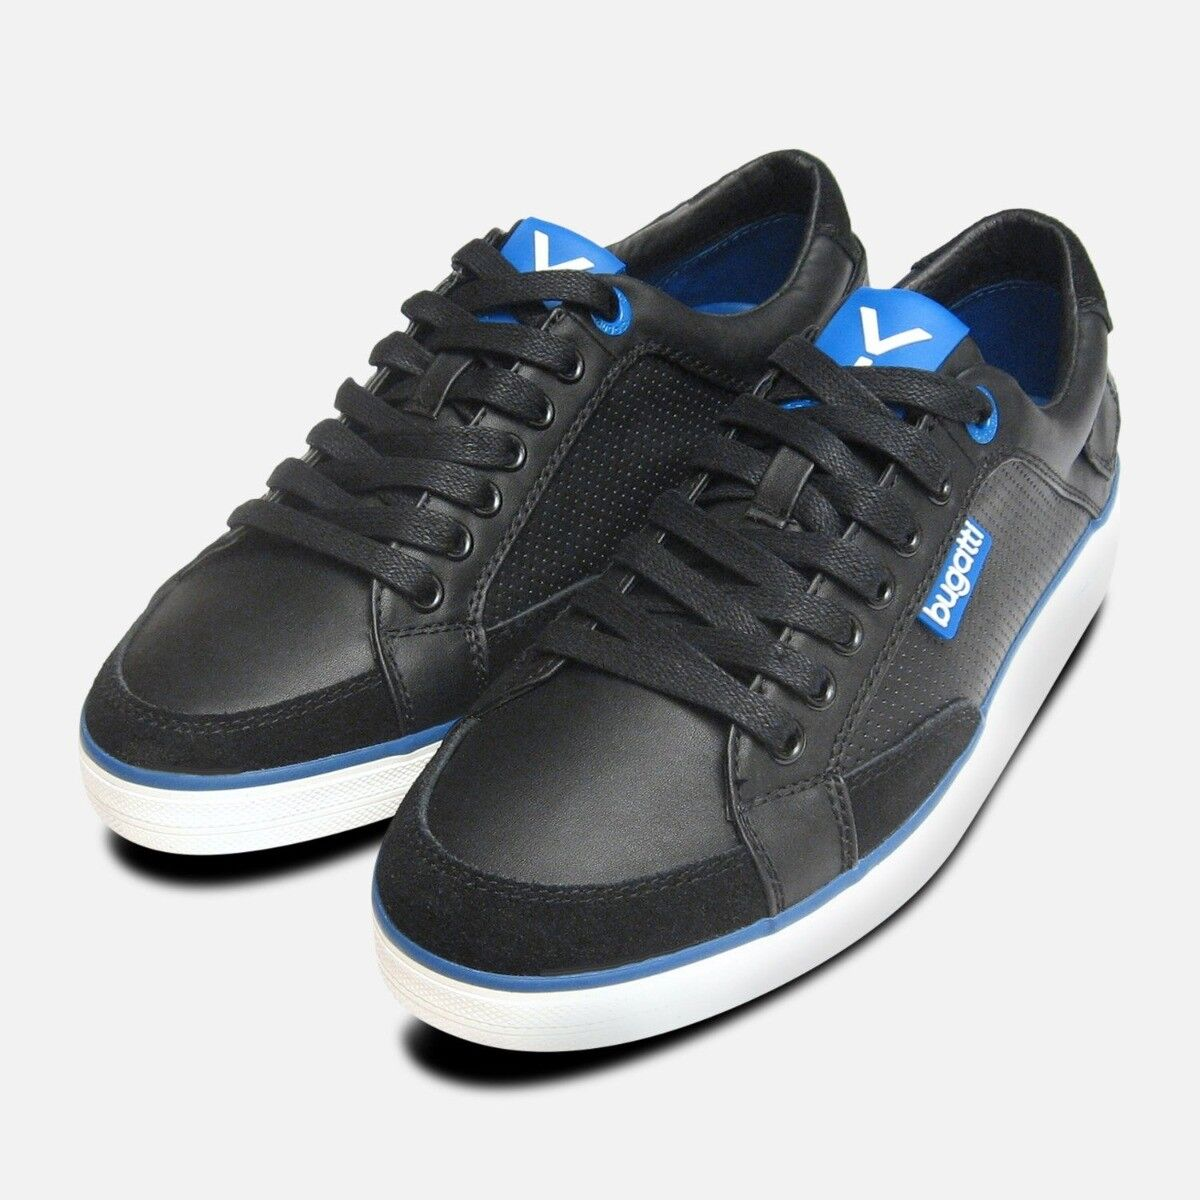 Black & Navy bluee Leather Mens Designer Trainers by Bugatti Sneakers